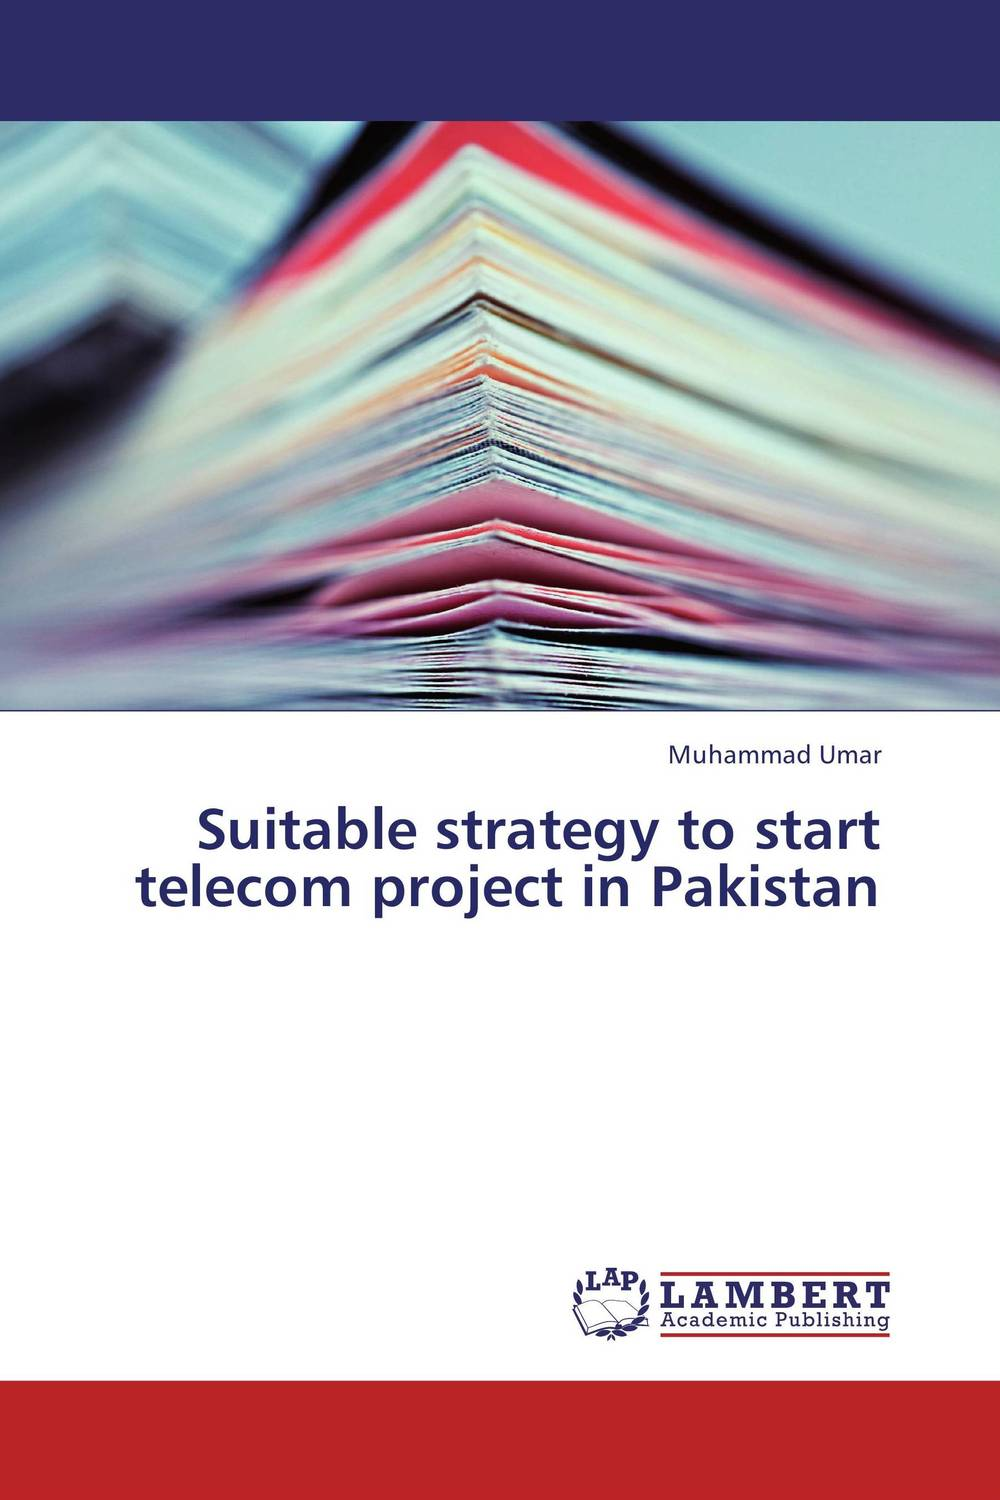 Suitable strategy to start telecom project in Pakistan arcade ndoricimpa inflation output growth and their uncertainties in south africa empirical evidence from an asymmetric multivariate garch m model